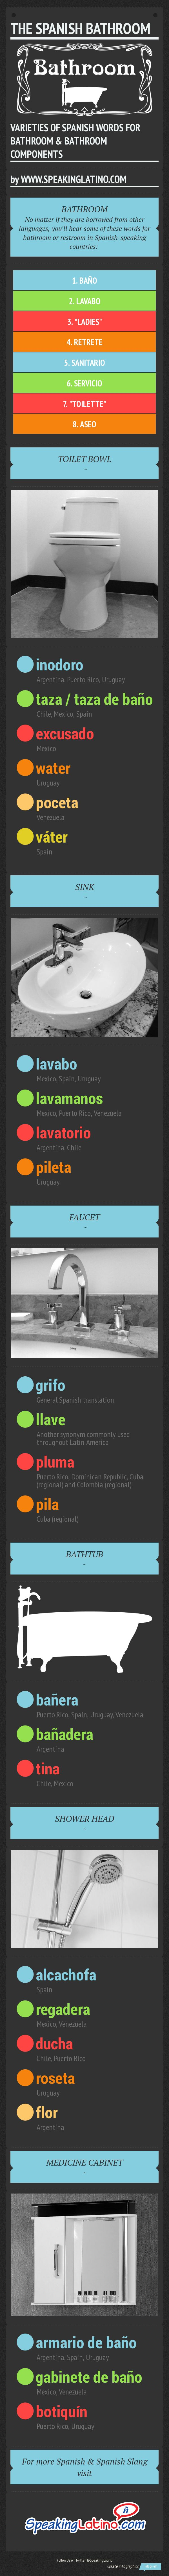 Spanish Words For Bathroom And Bathroom Components #Infographic  #LearnSpanish